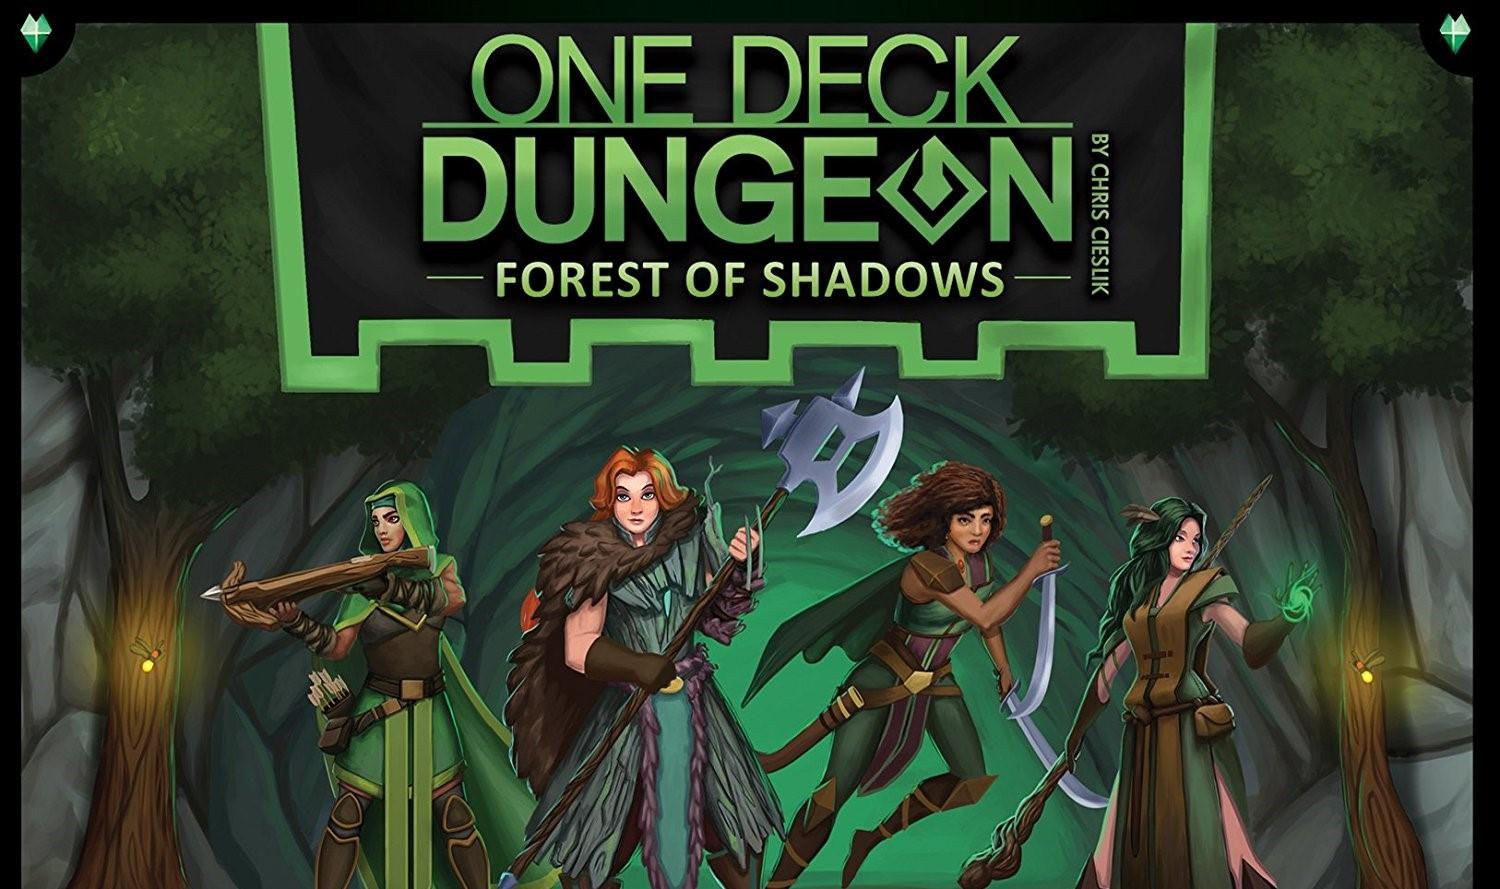 One Deck Dungeon – Forest of Shadows